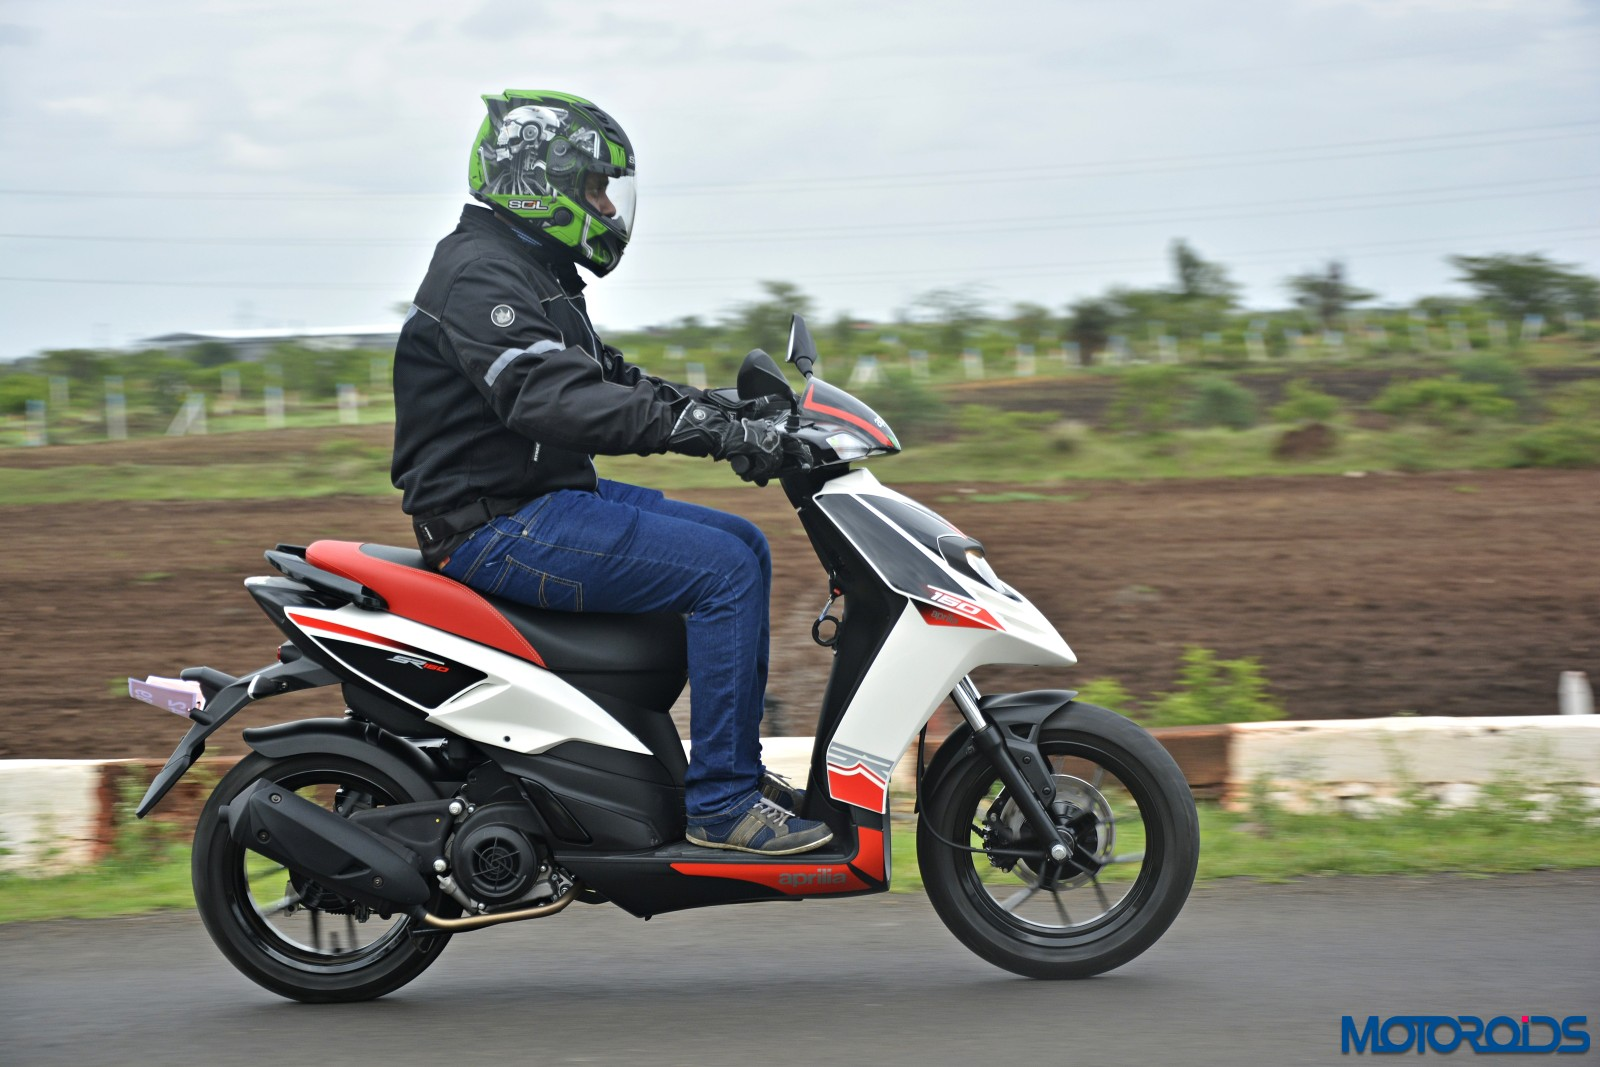 Aprilia SR 150 Review - Action Shots (9)